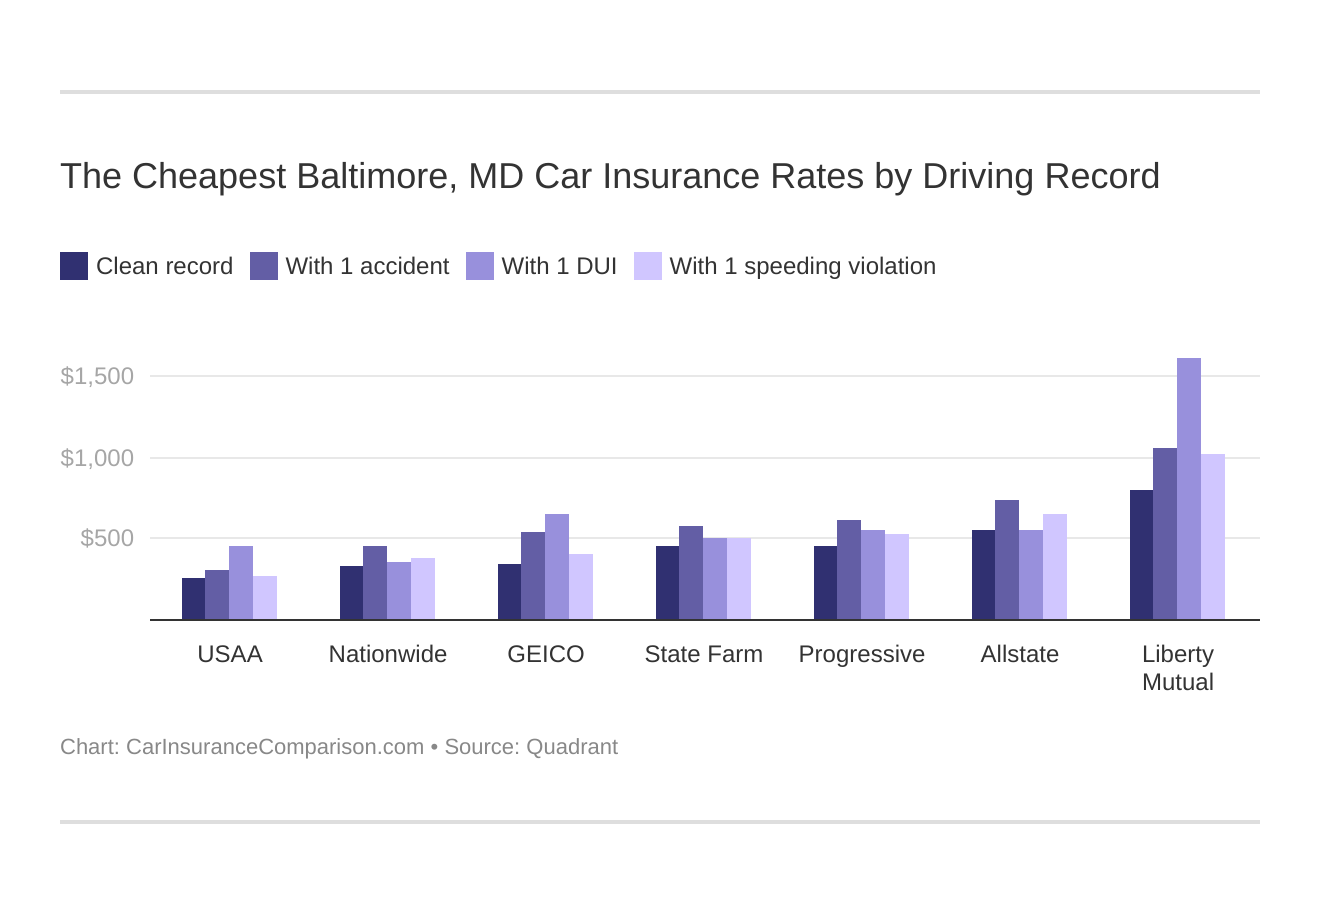 The Cheapest Baltimore, MD Car Insurance Rates by Driving Record